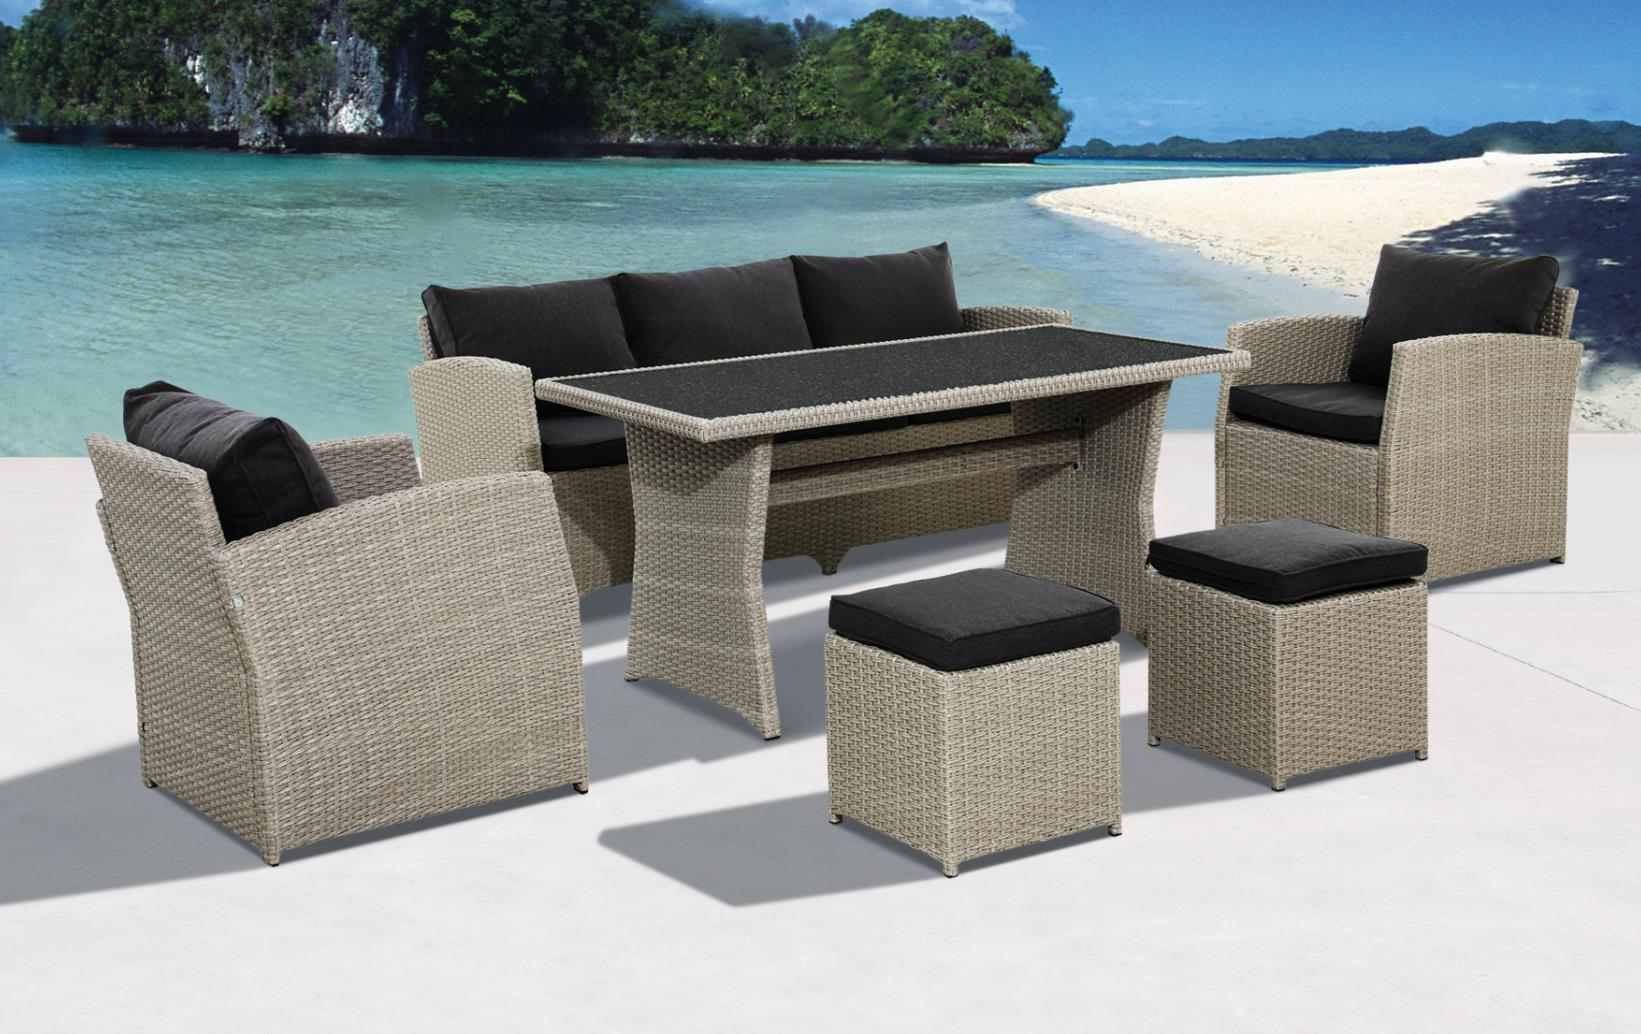 skyline polyrattan lounge gartenm bel sitzgruppe natur lounge m bel garten gartenm bel. Black Bedroom Furniture Sets. Home Design Ideas